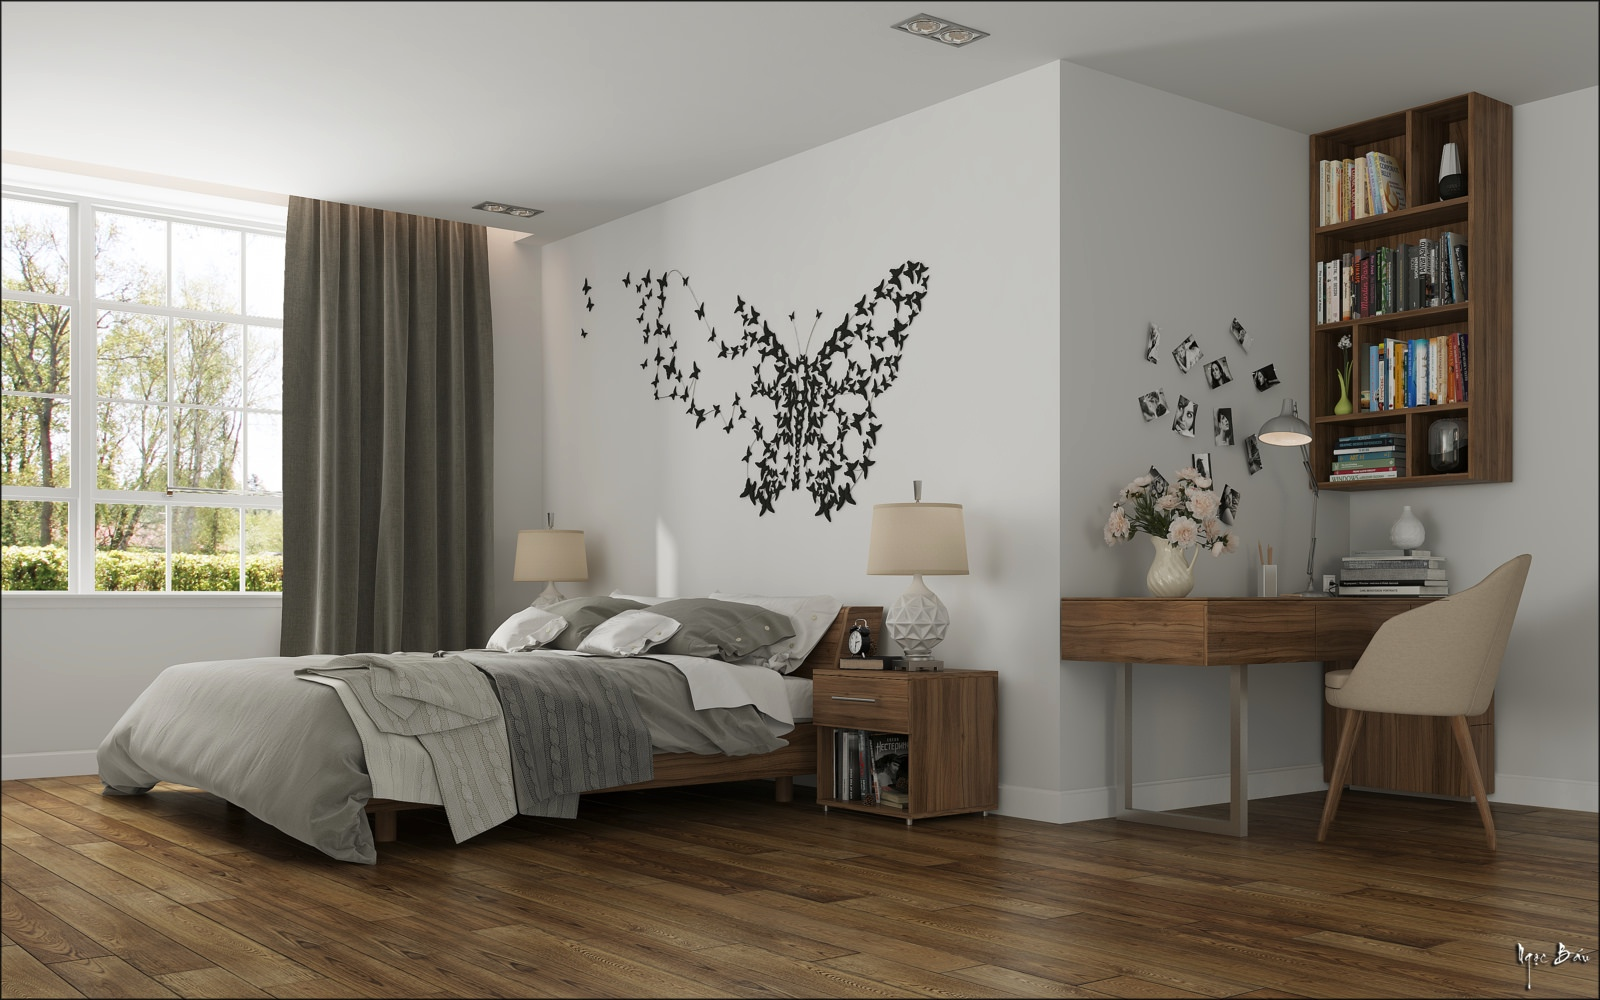 Bedroom butterfly wall art interior design ideas for Wall art ideas for bedroom